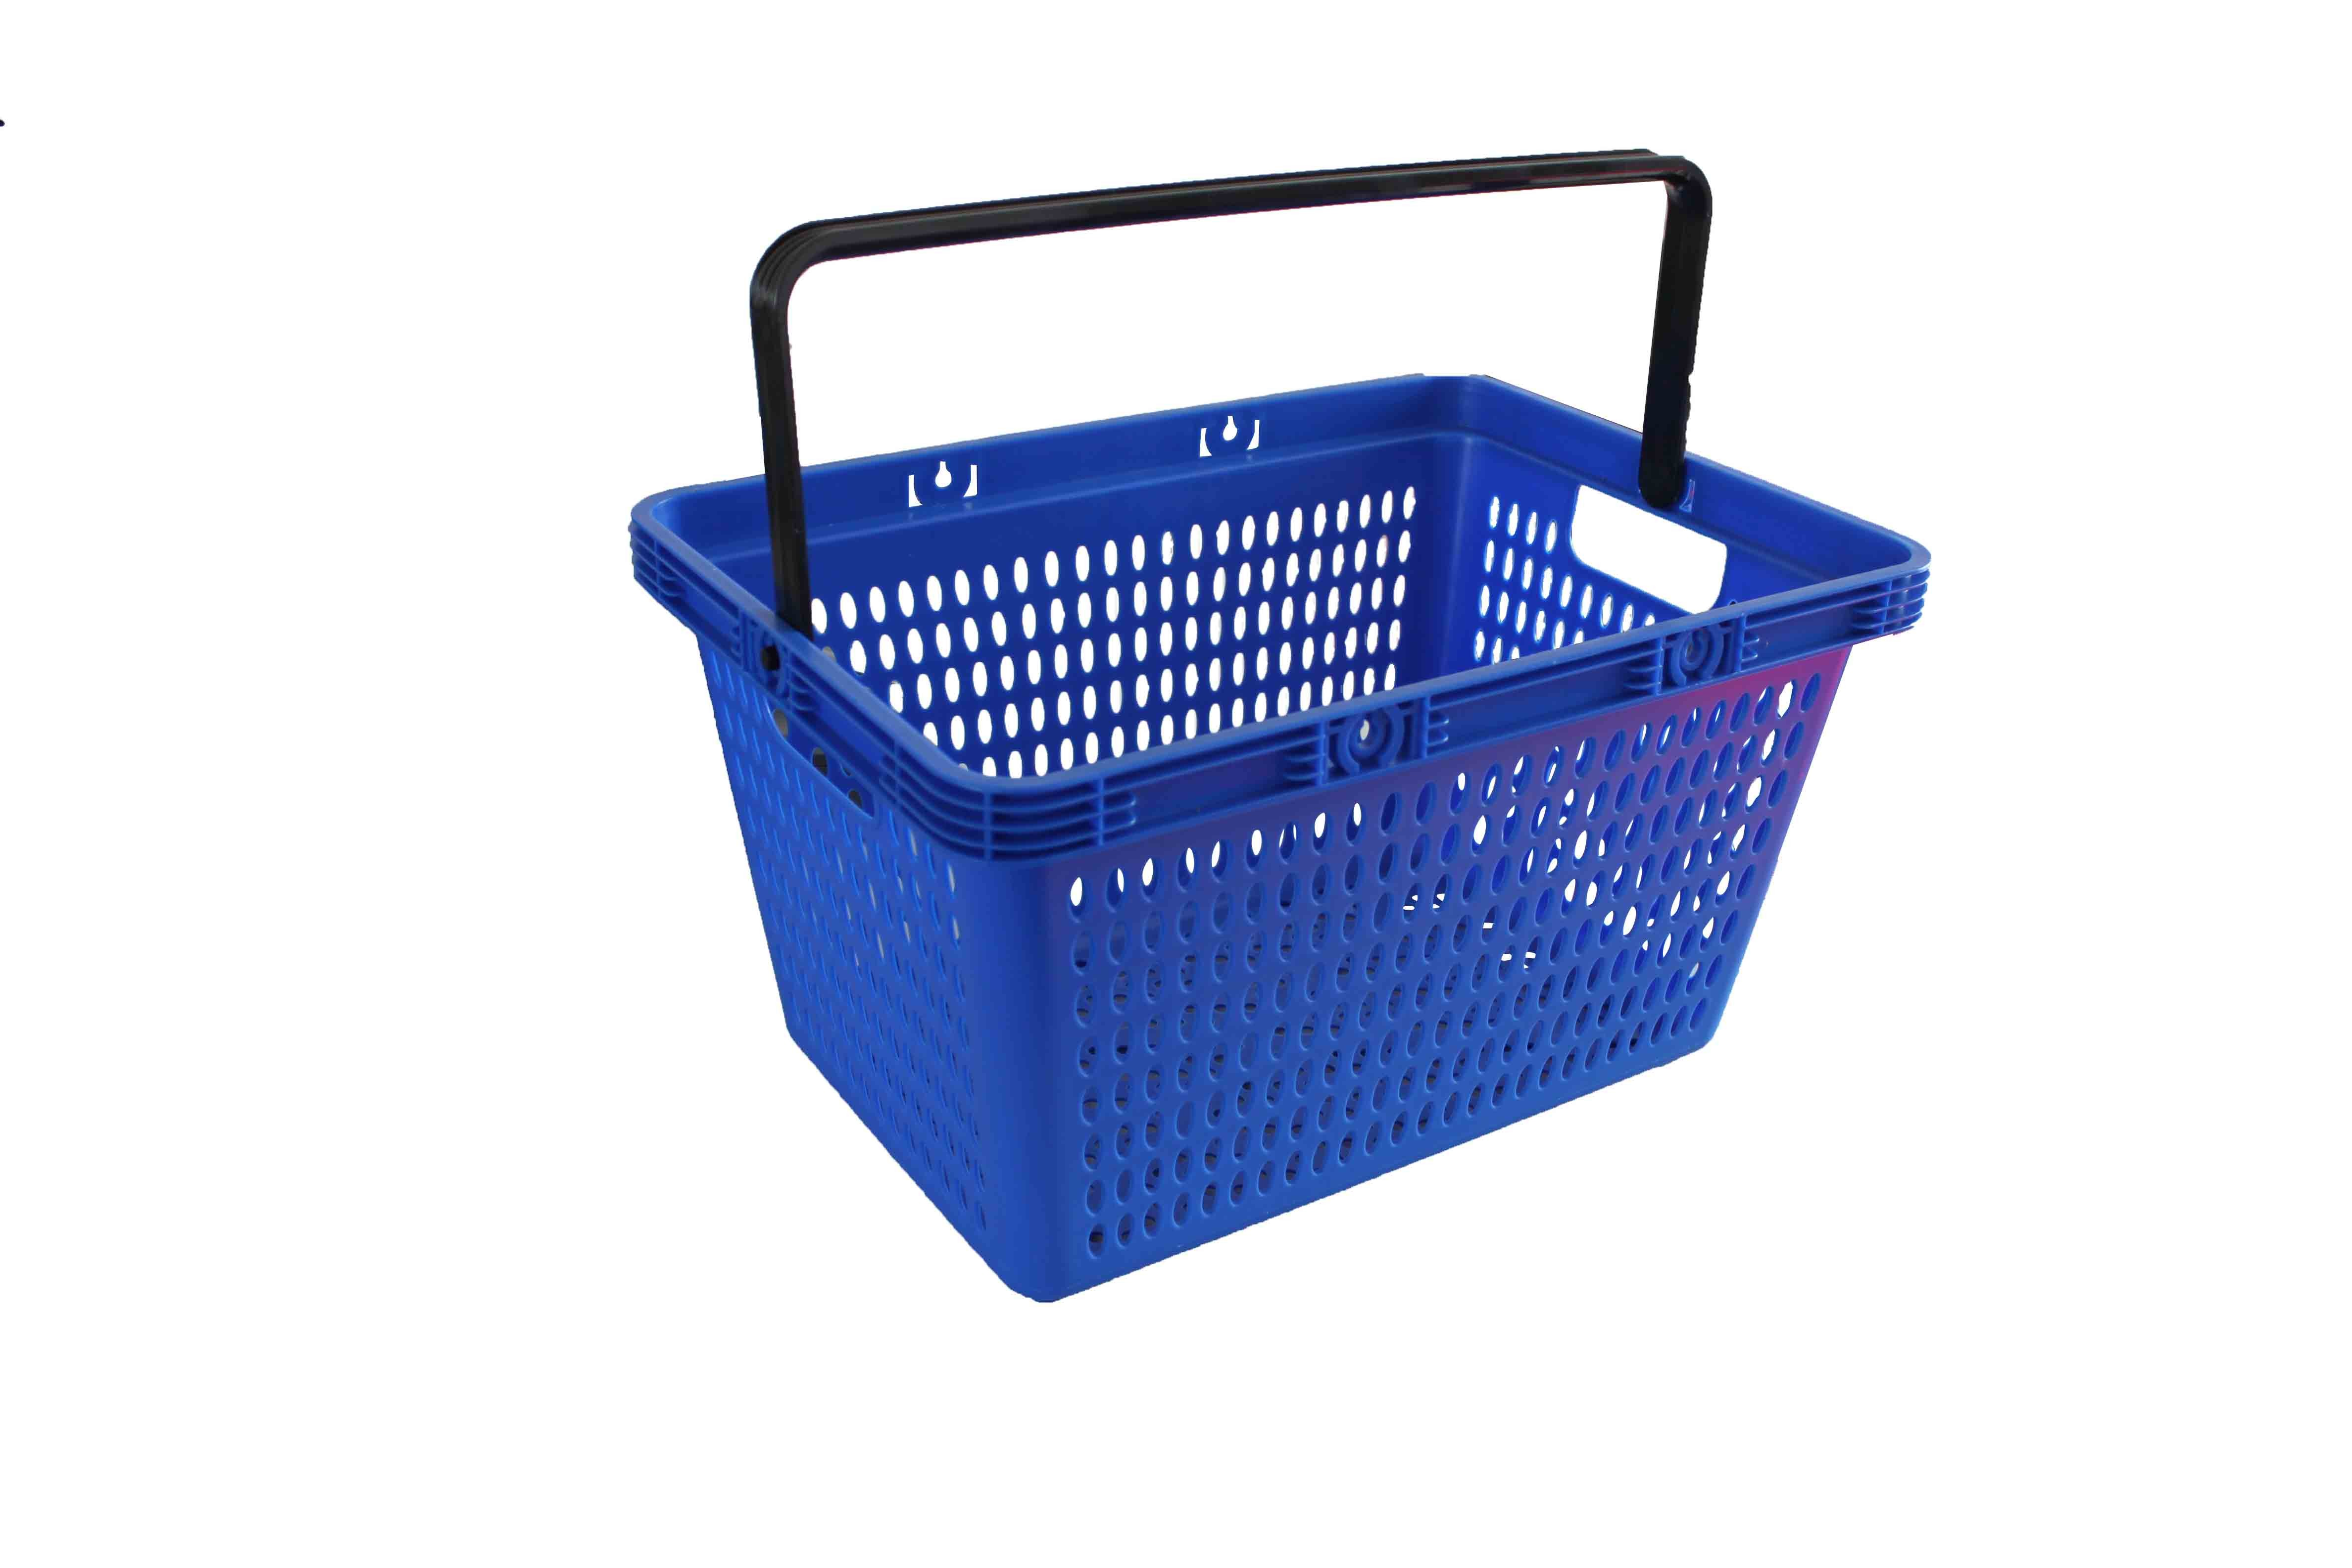 28L Blue PP Plastic Shopping Baskets With Handles For Supermarkets / Stores